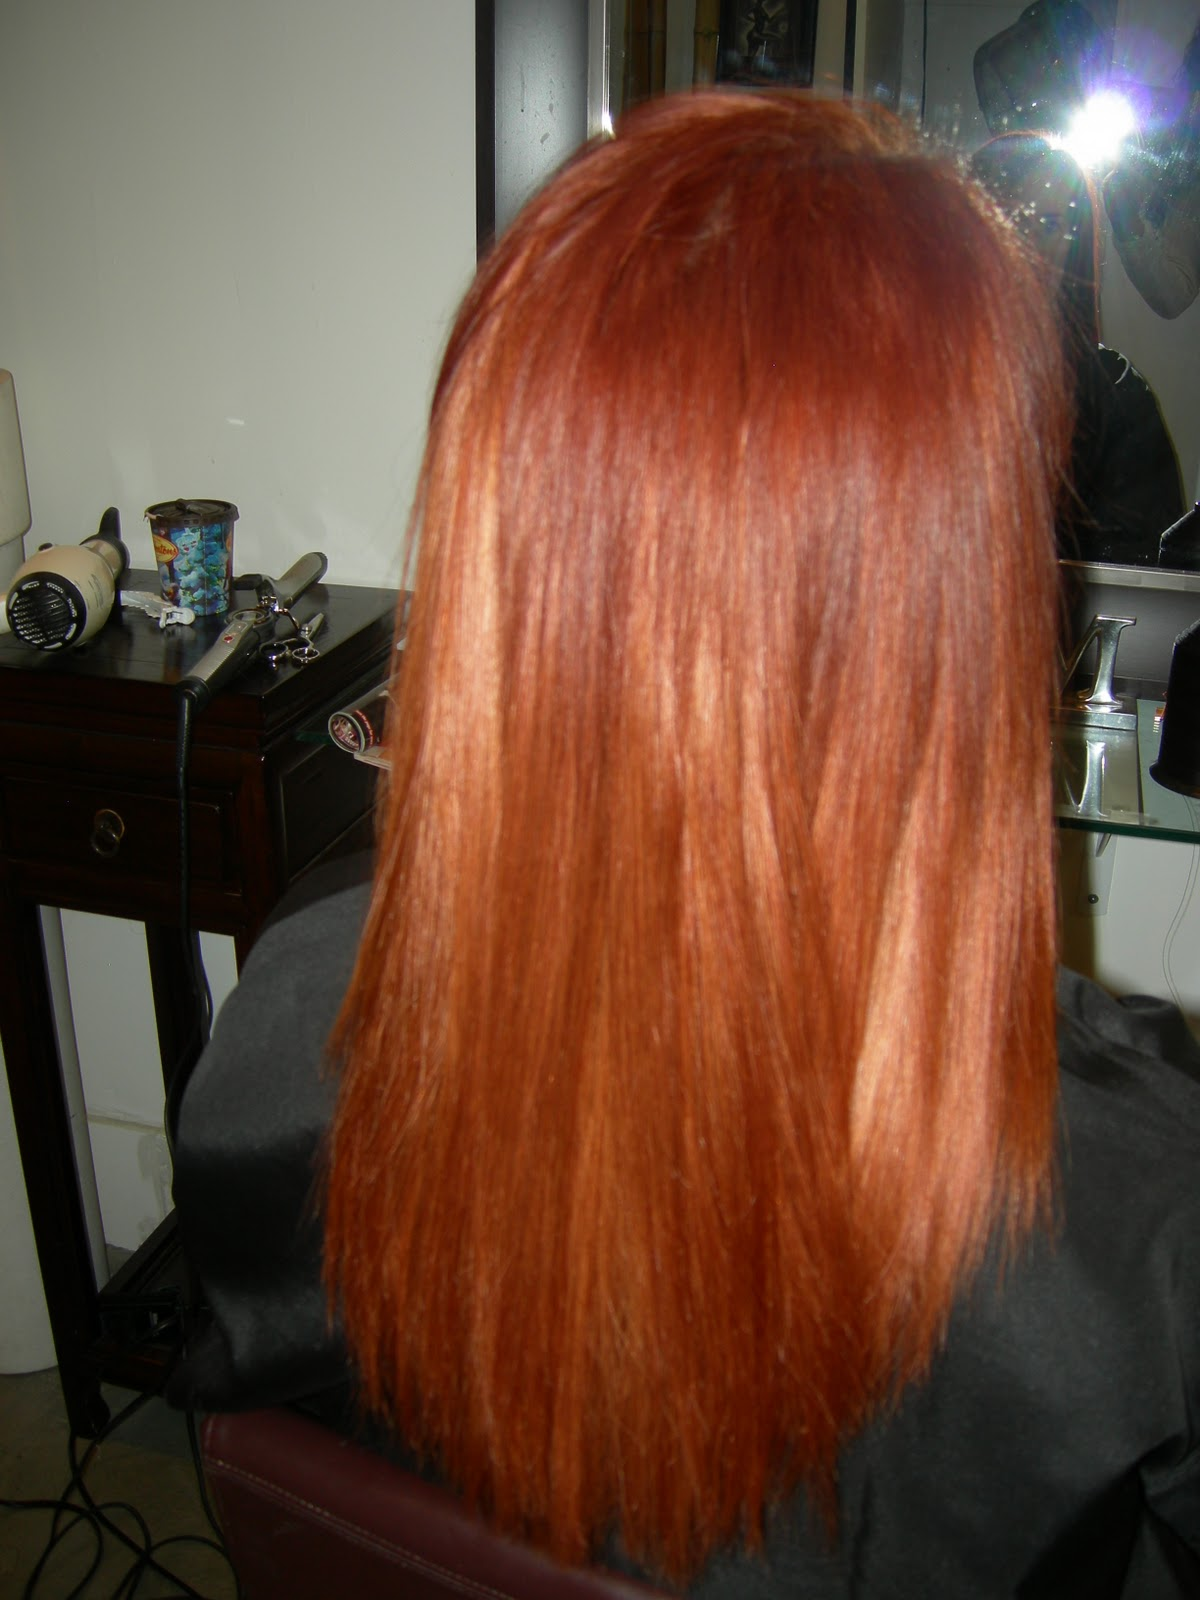 Hair color tips from wella professionals a girls gotta spa for Color touch salon